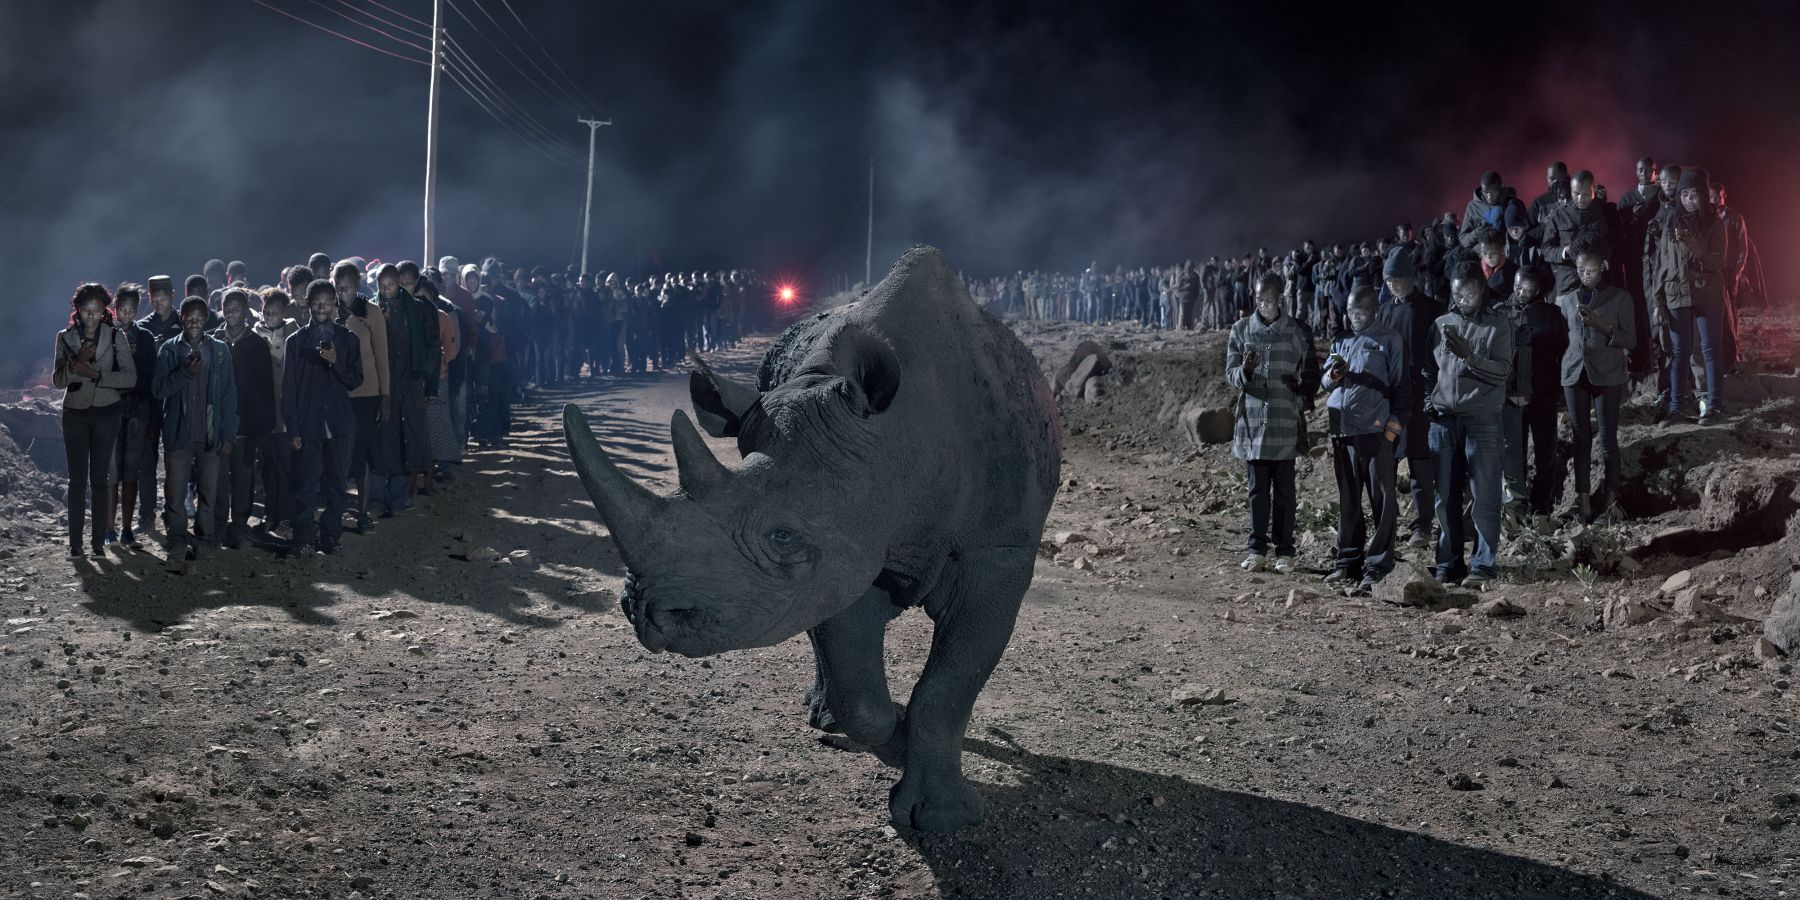 RIVER OF PEOPLE WITH BLIND RHINO, 2018,